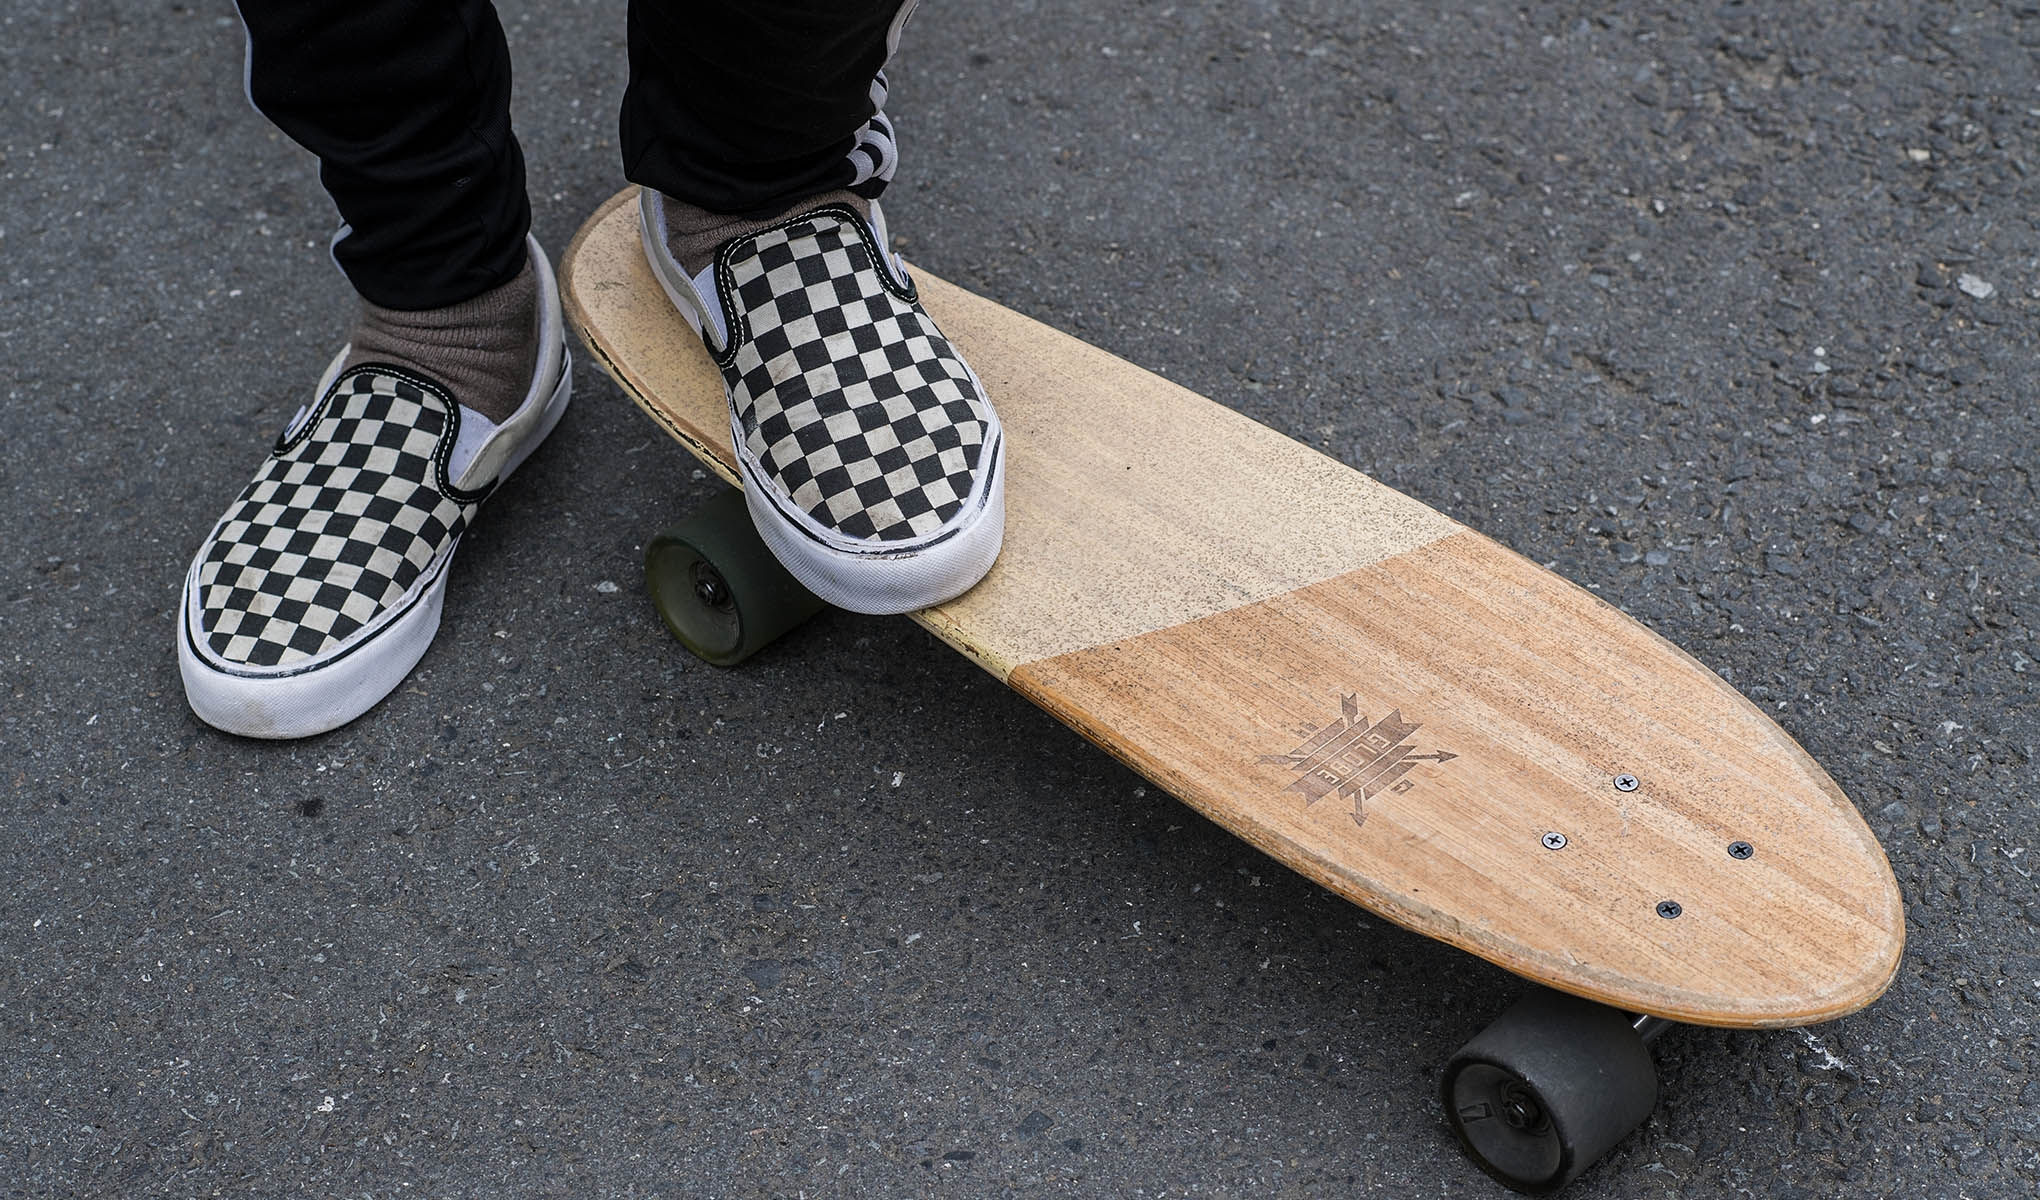 One foot on skateboard